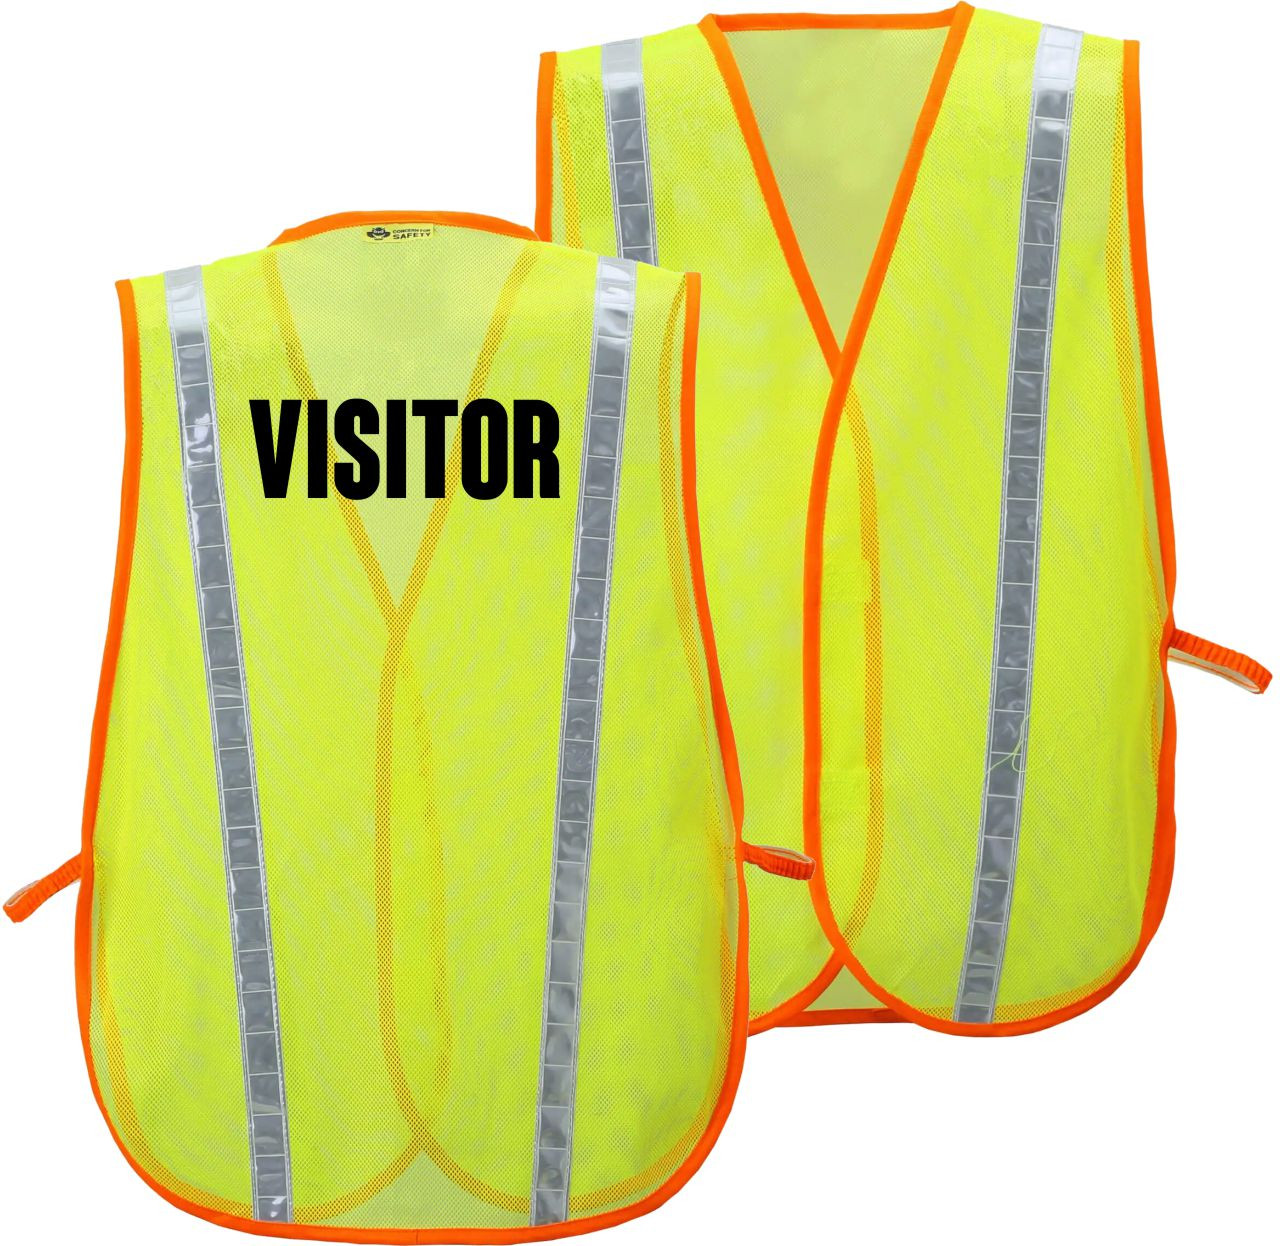 VISITOR Printed on A Class 2 Safety Vest